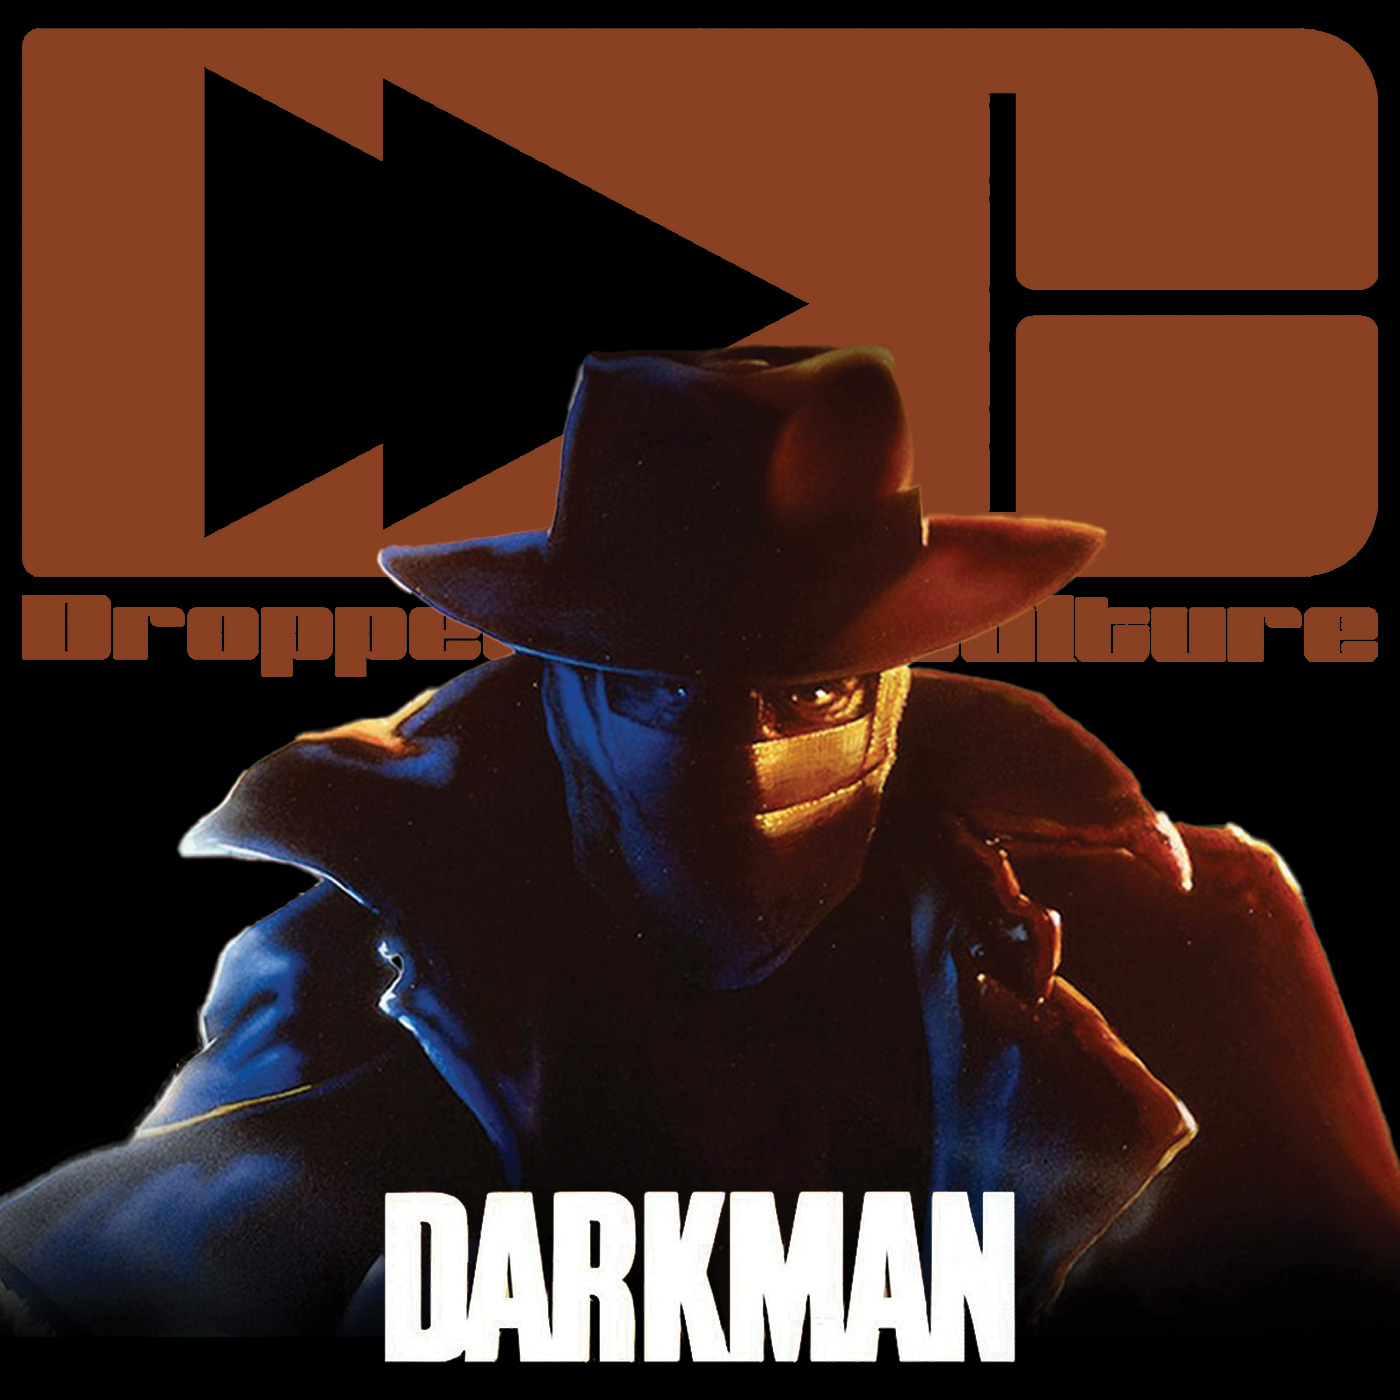 Dropped Culture Darkman